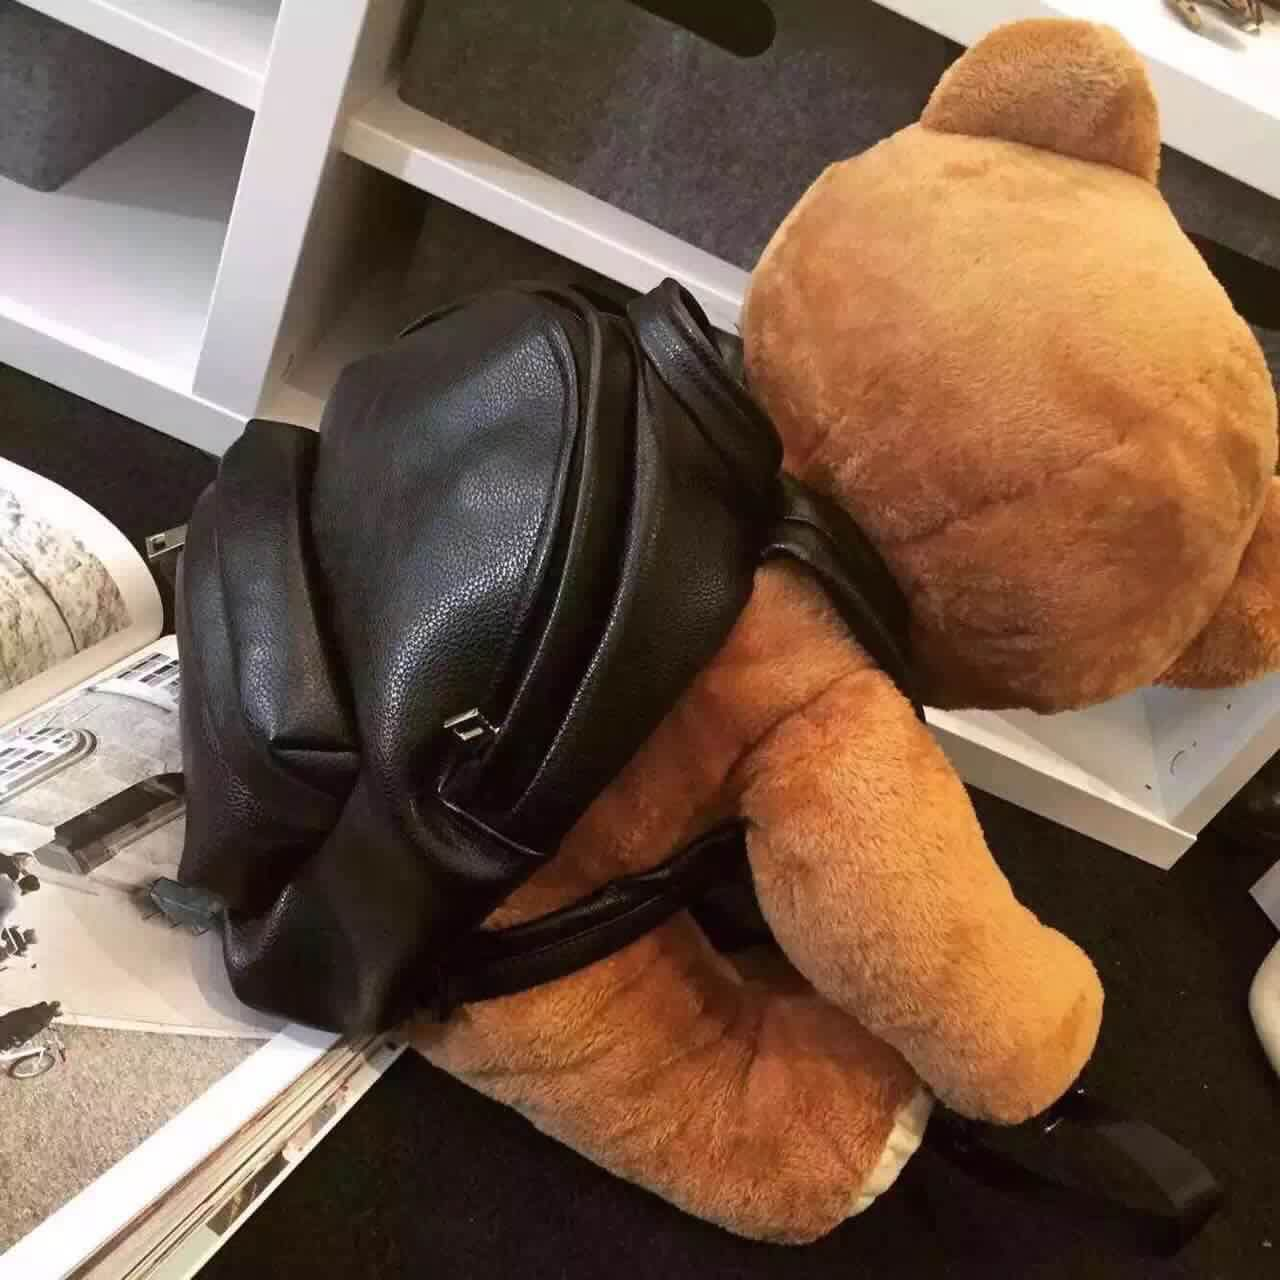 Winter Women/girls Fashion Leather Backpack Plush Teddy Bear Backpack/school Bag Fmous Brand Leisure Small Backpack Bag #4